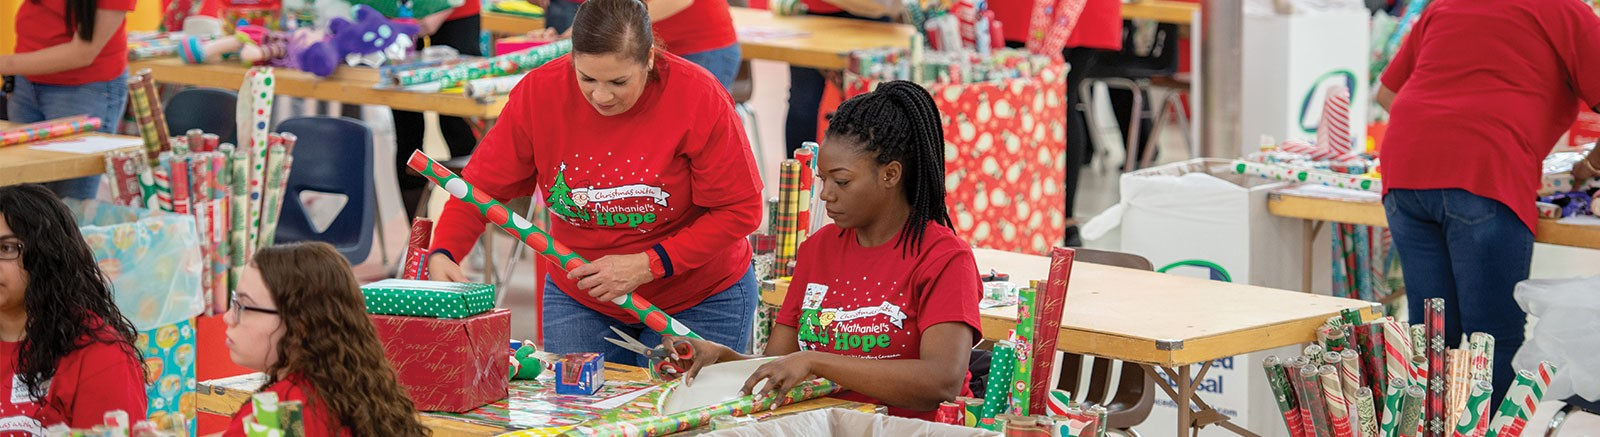 Volunteering On Christmas Day 2020 Orlando Christmas with Nathaniel's Hope | nathanielshope.org